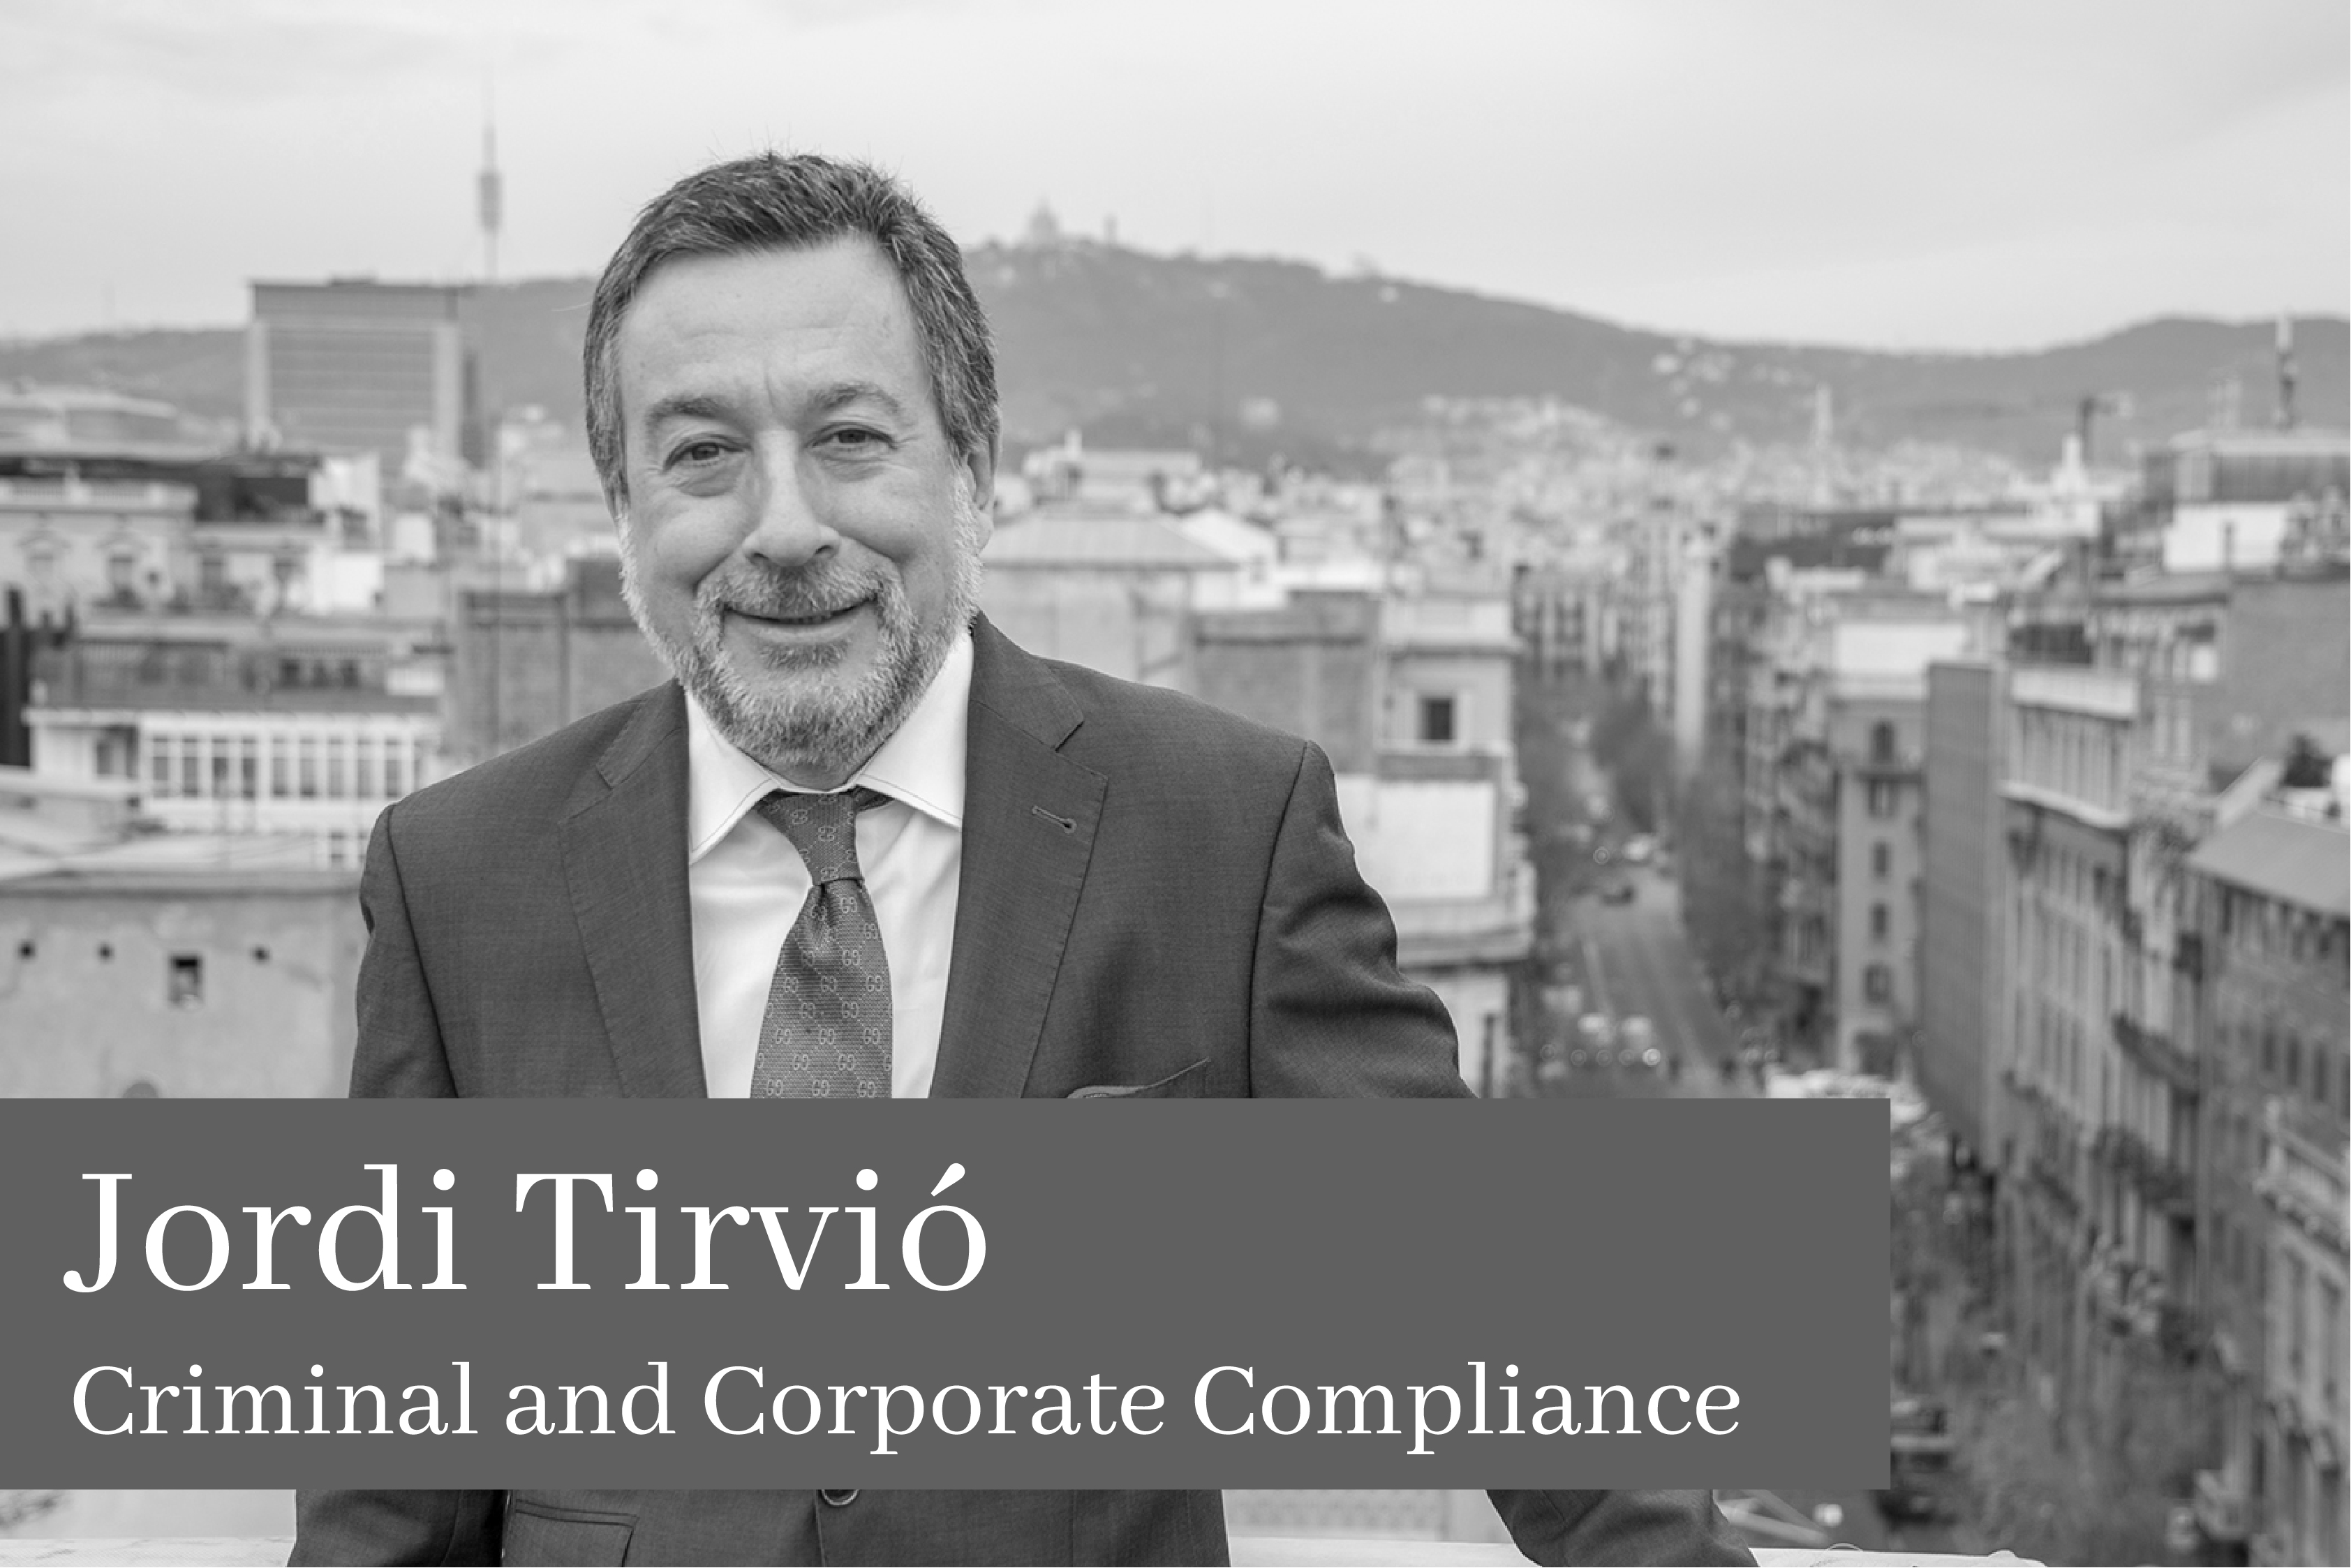 Jordi Tirvió Criminal and Corporate Compliance